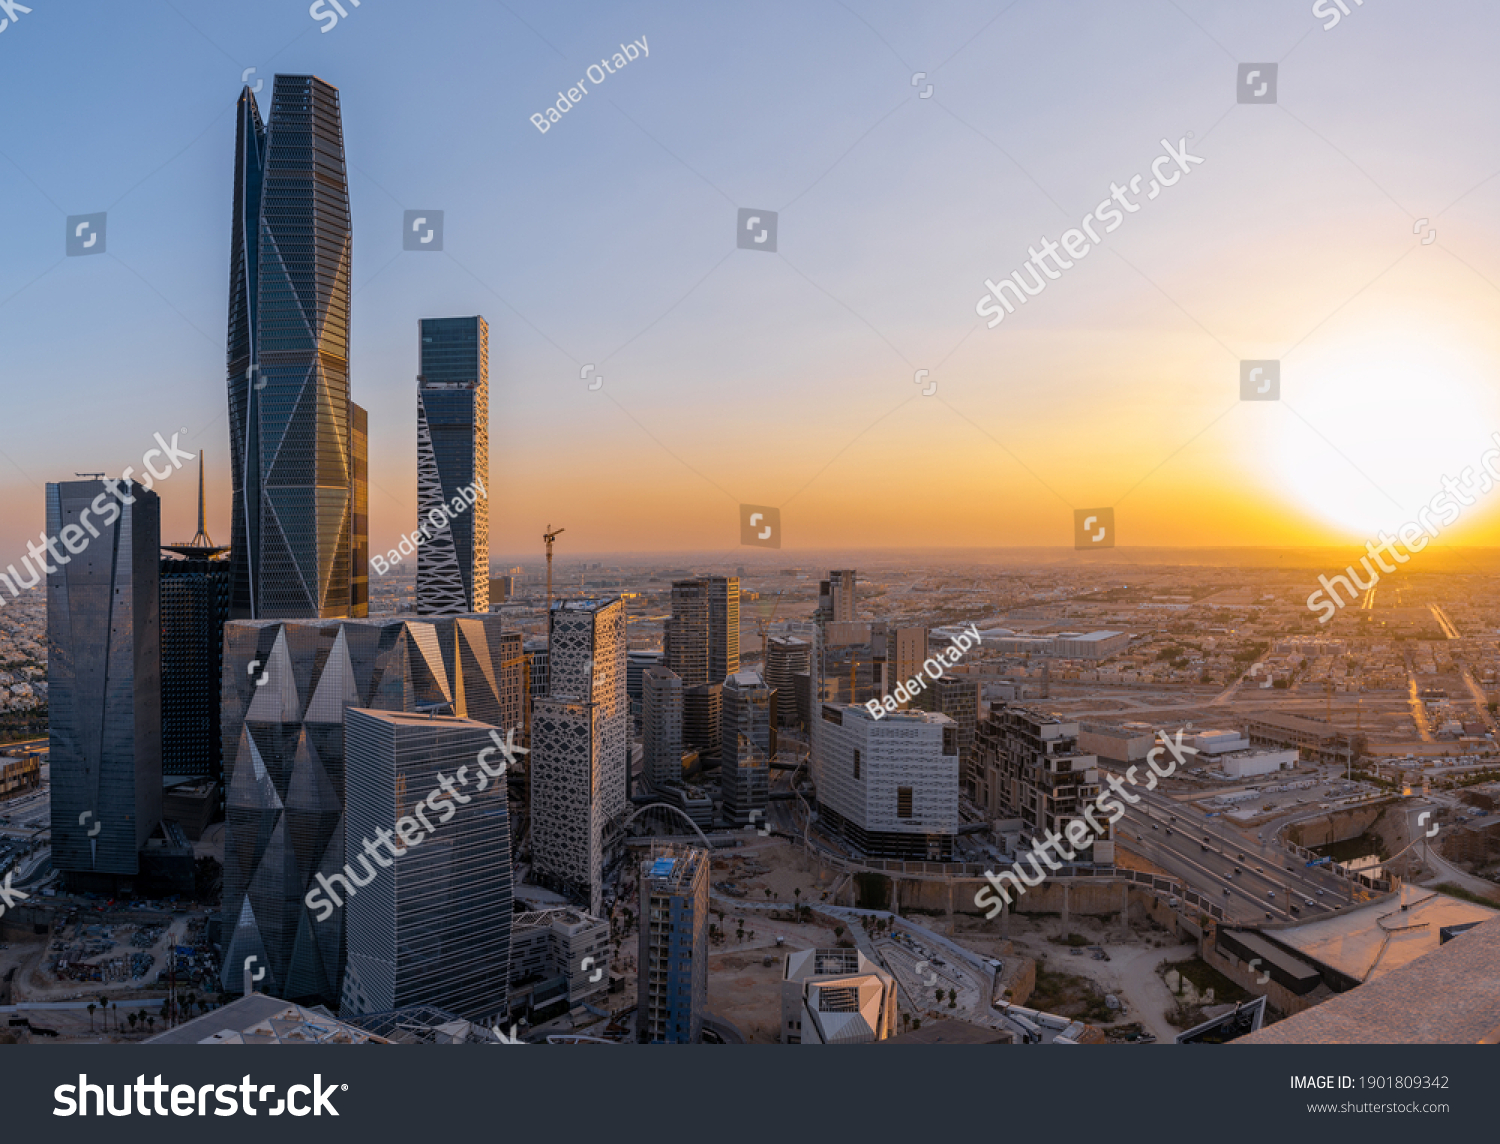 Riyadh Saudi Capital with it's Financial District that has the PIF Tower HQ #1901809342